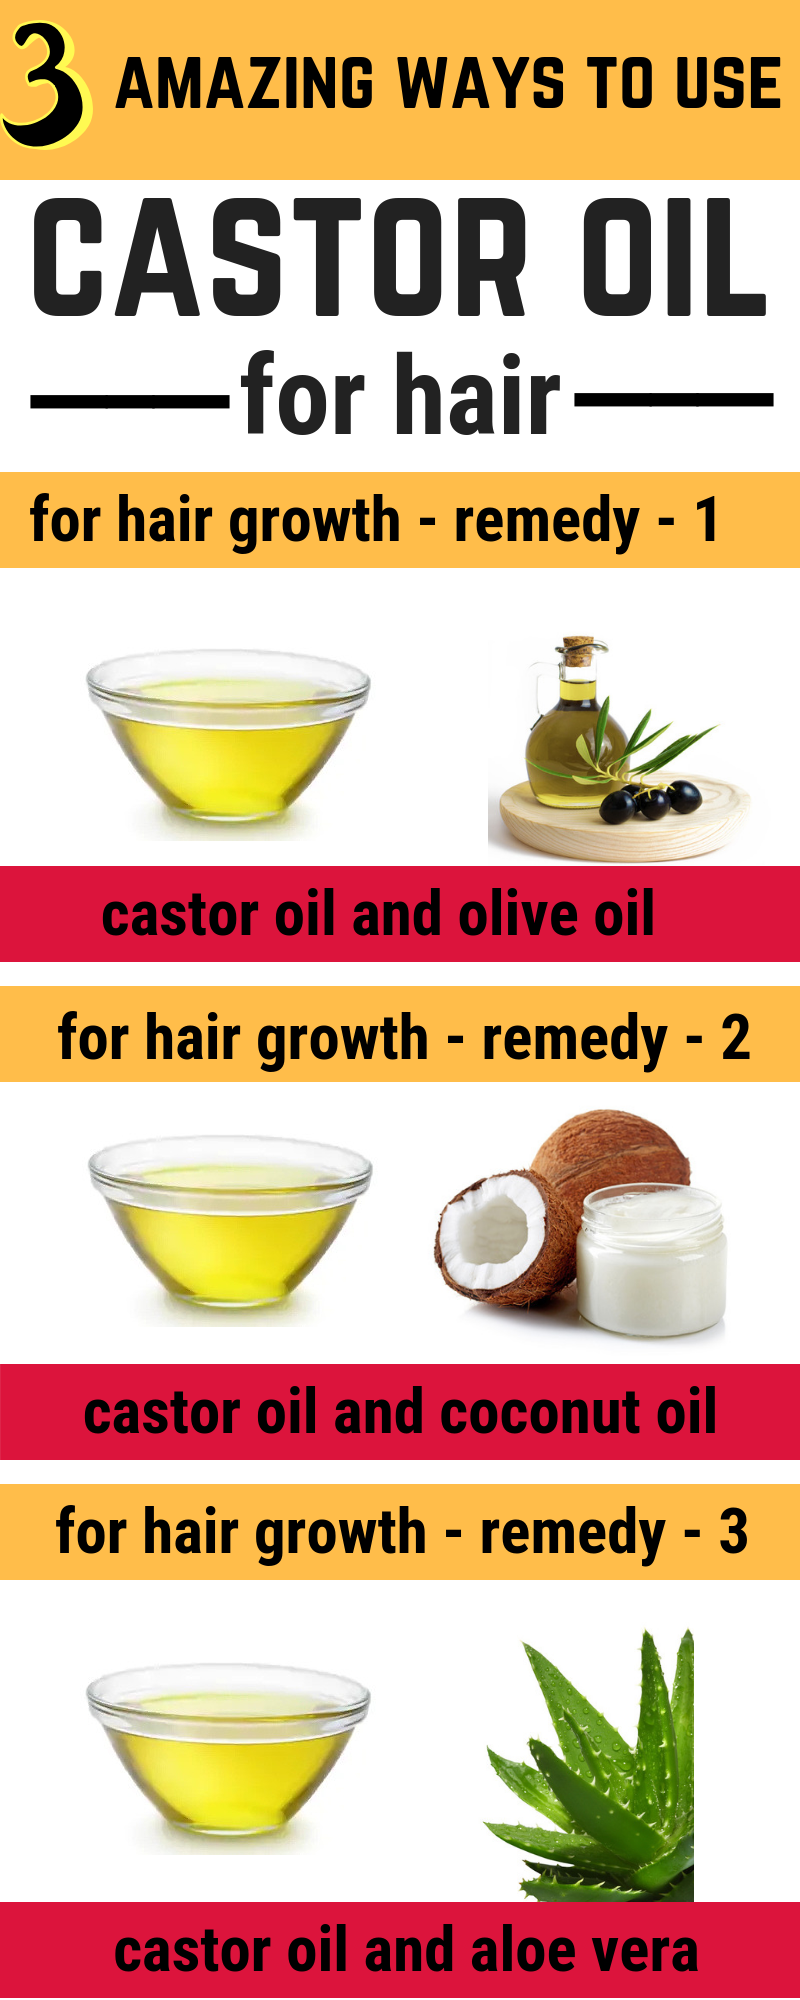 Mix Castor Oil With This To Get Faster Hair Growth Diy